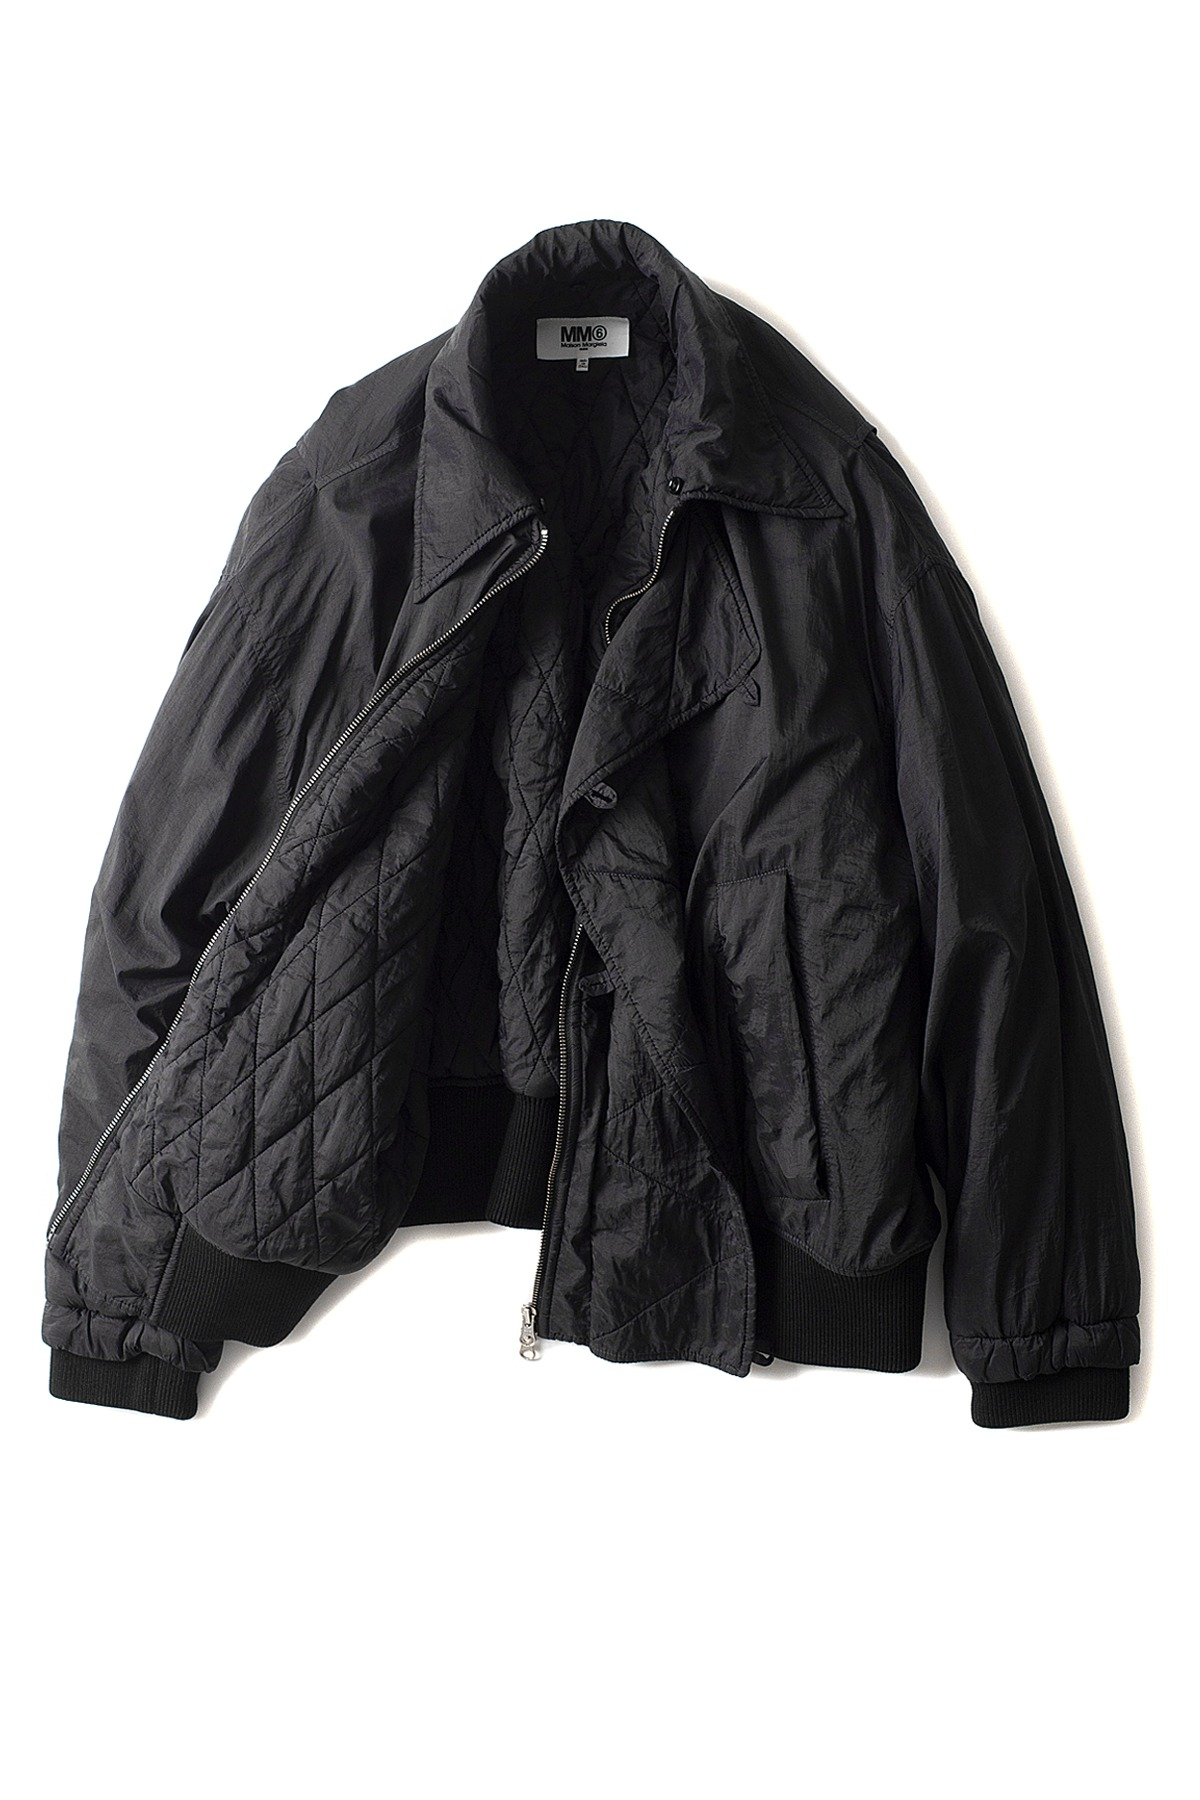 MM6 Maison Margiela : Fur Bomber Jacket (Black)